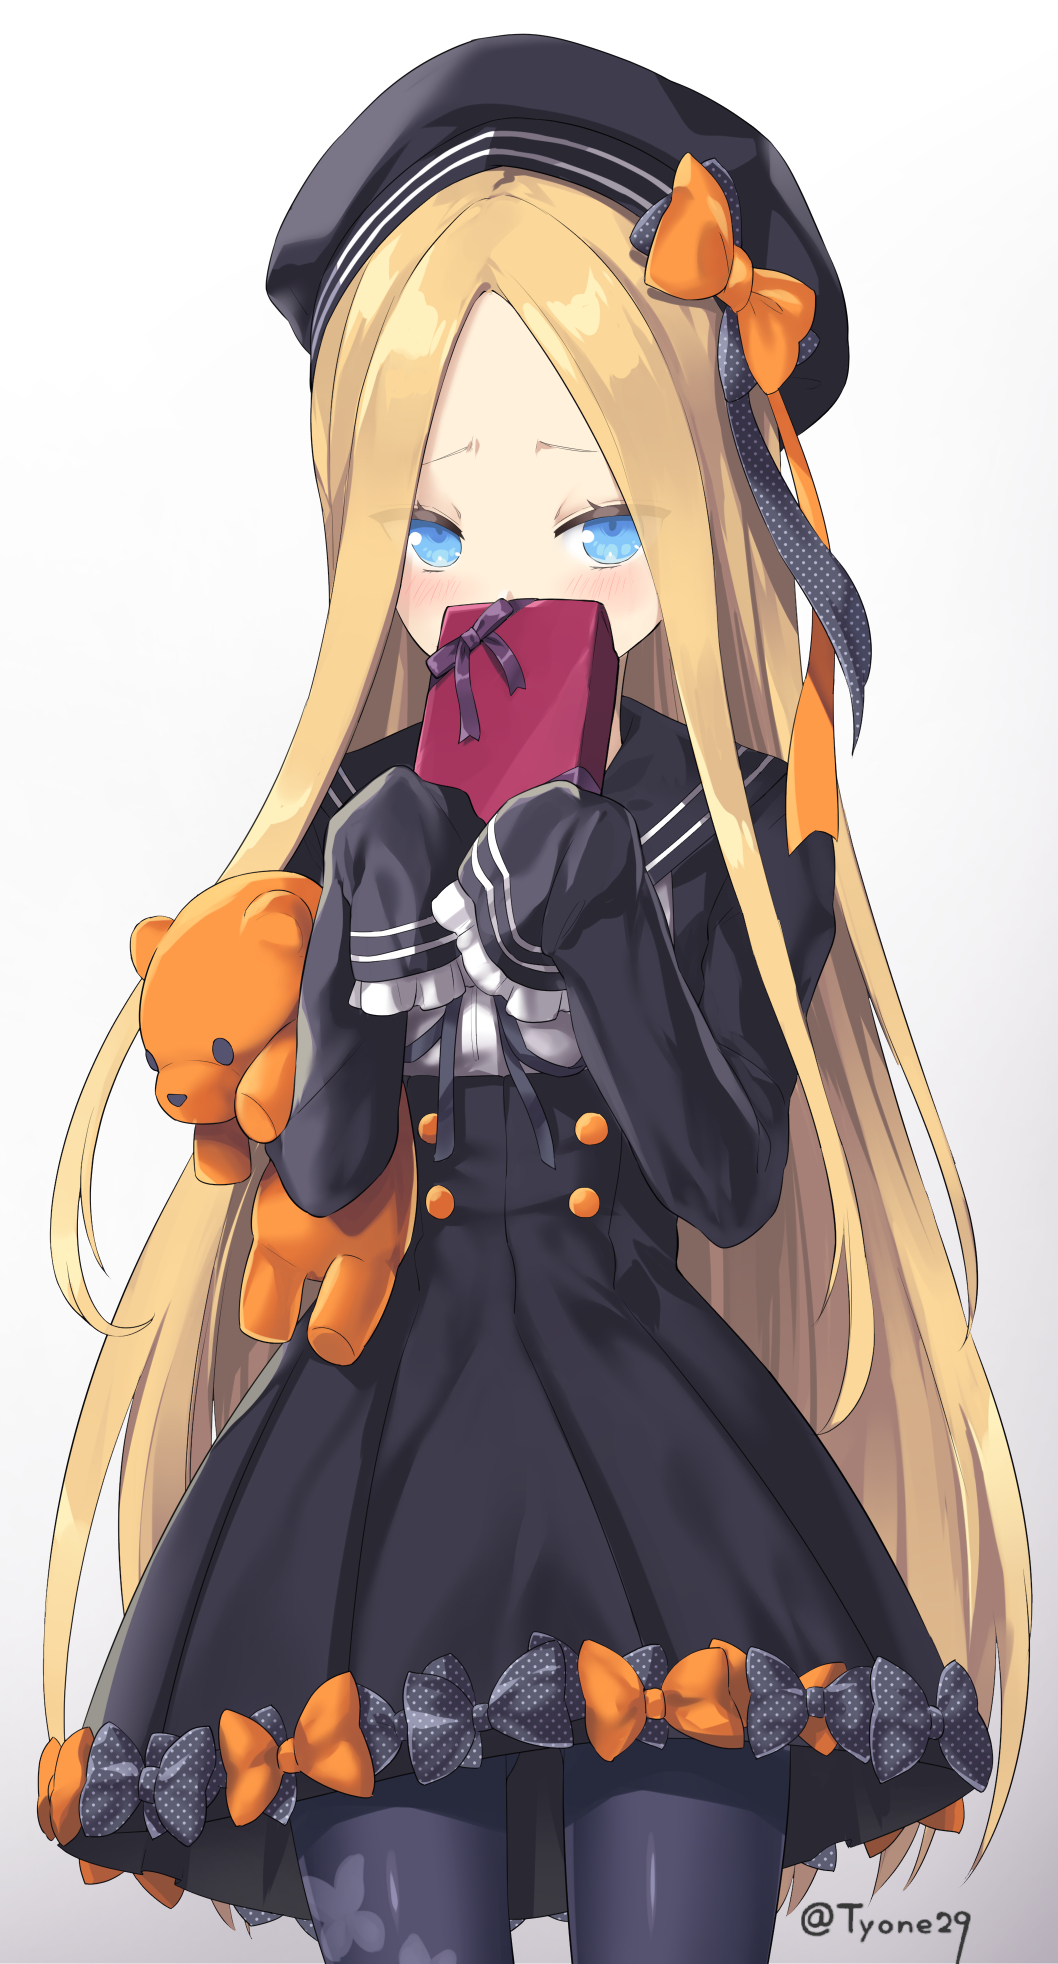 1girl abigail_williams_(fate/grand_order) animal_print bangs black_bow black_dress black_hat black_legwear blonde_hair blue_eyes blush bow box butterfly_print covering_mouth dress fate/grand_order fate_(series) forehead gift gift_box hat highres holding holding_stuffed_animal long_hair long_sleeves looking_at_viewer orange_bow pantyhose parted_bangs polka_dot polka_dot_bow print_legwear sailor_collar sailor_dress sailor_hat simple_background sleeves_past_wrists solo stuffed_animal stuffed_toy teddy_bear twitter_username valentine very_long_hair white_background yyo